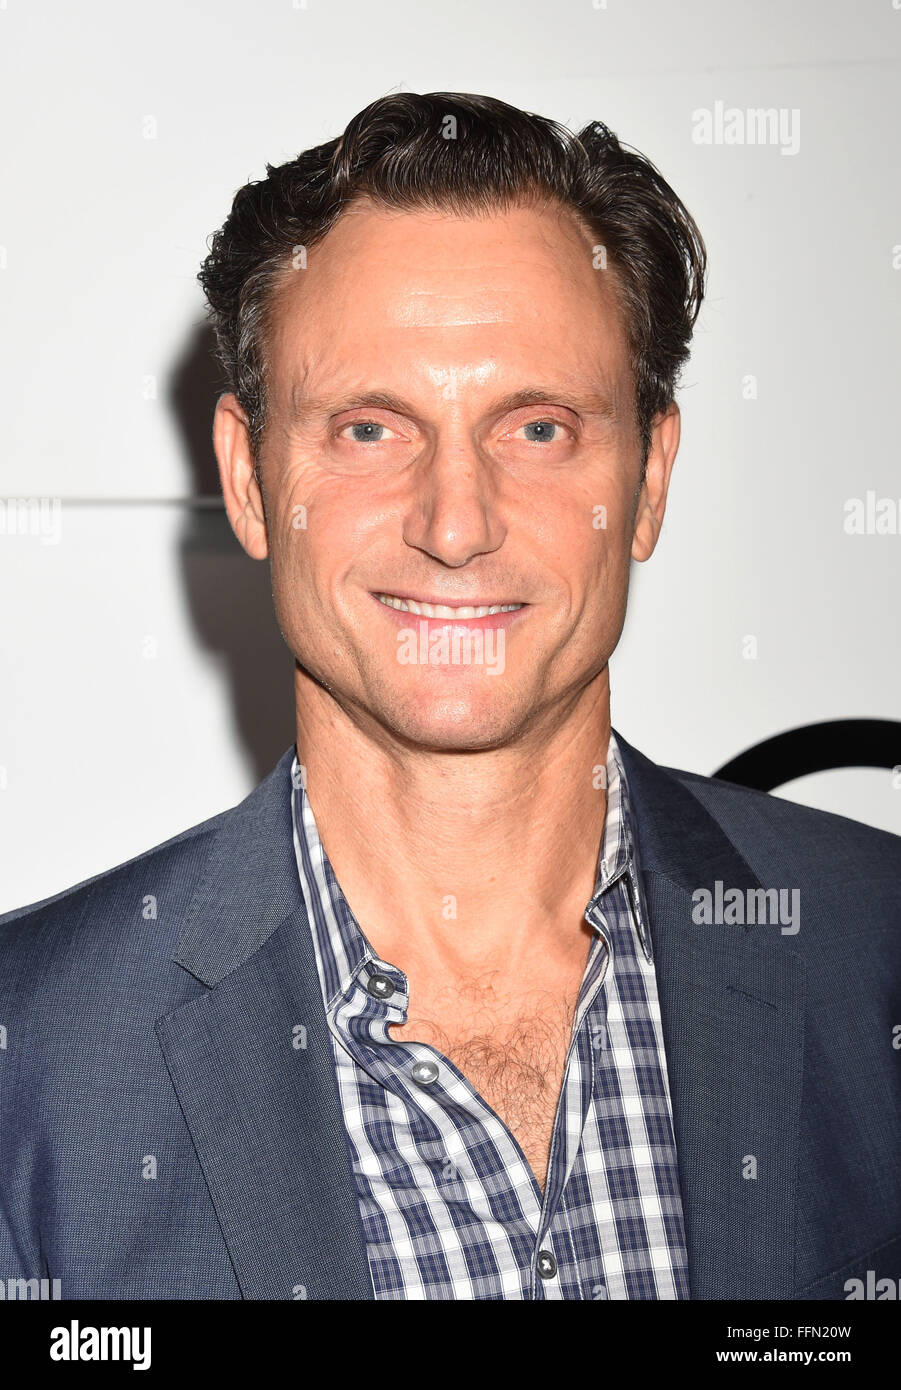 Actor Tony Goldwyn arrives at the Audi Celebrates Emmys Week 2015 at Cecconi's on September 17, 2015 in West - Stock Image